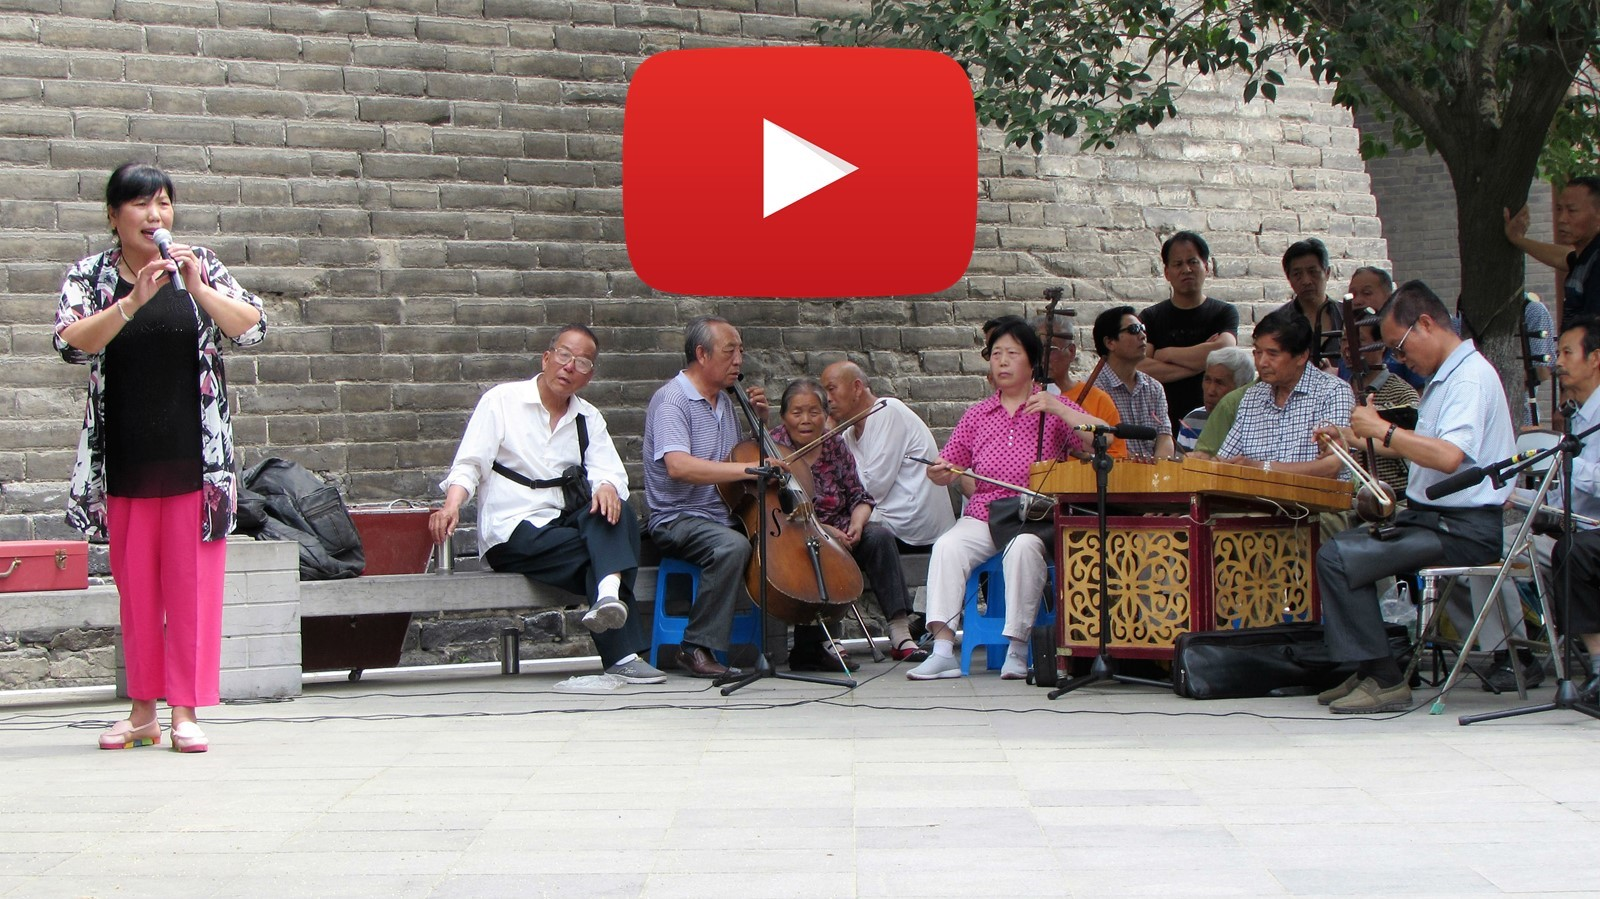 Singing in the park at the foot of the city wall in Xi'an